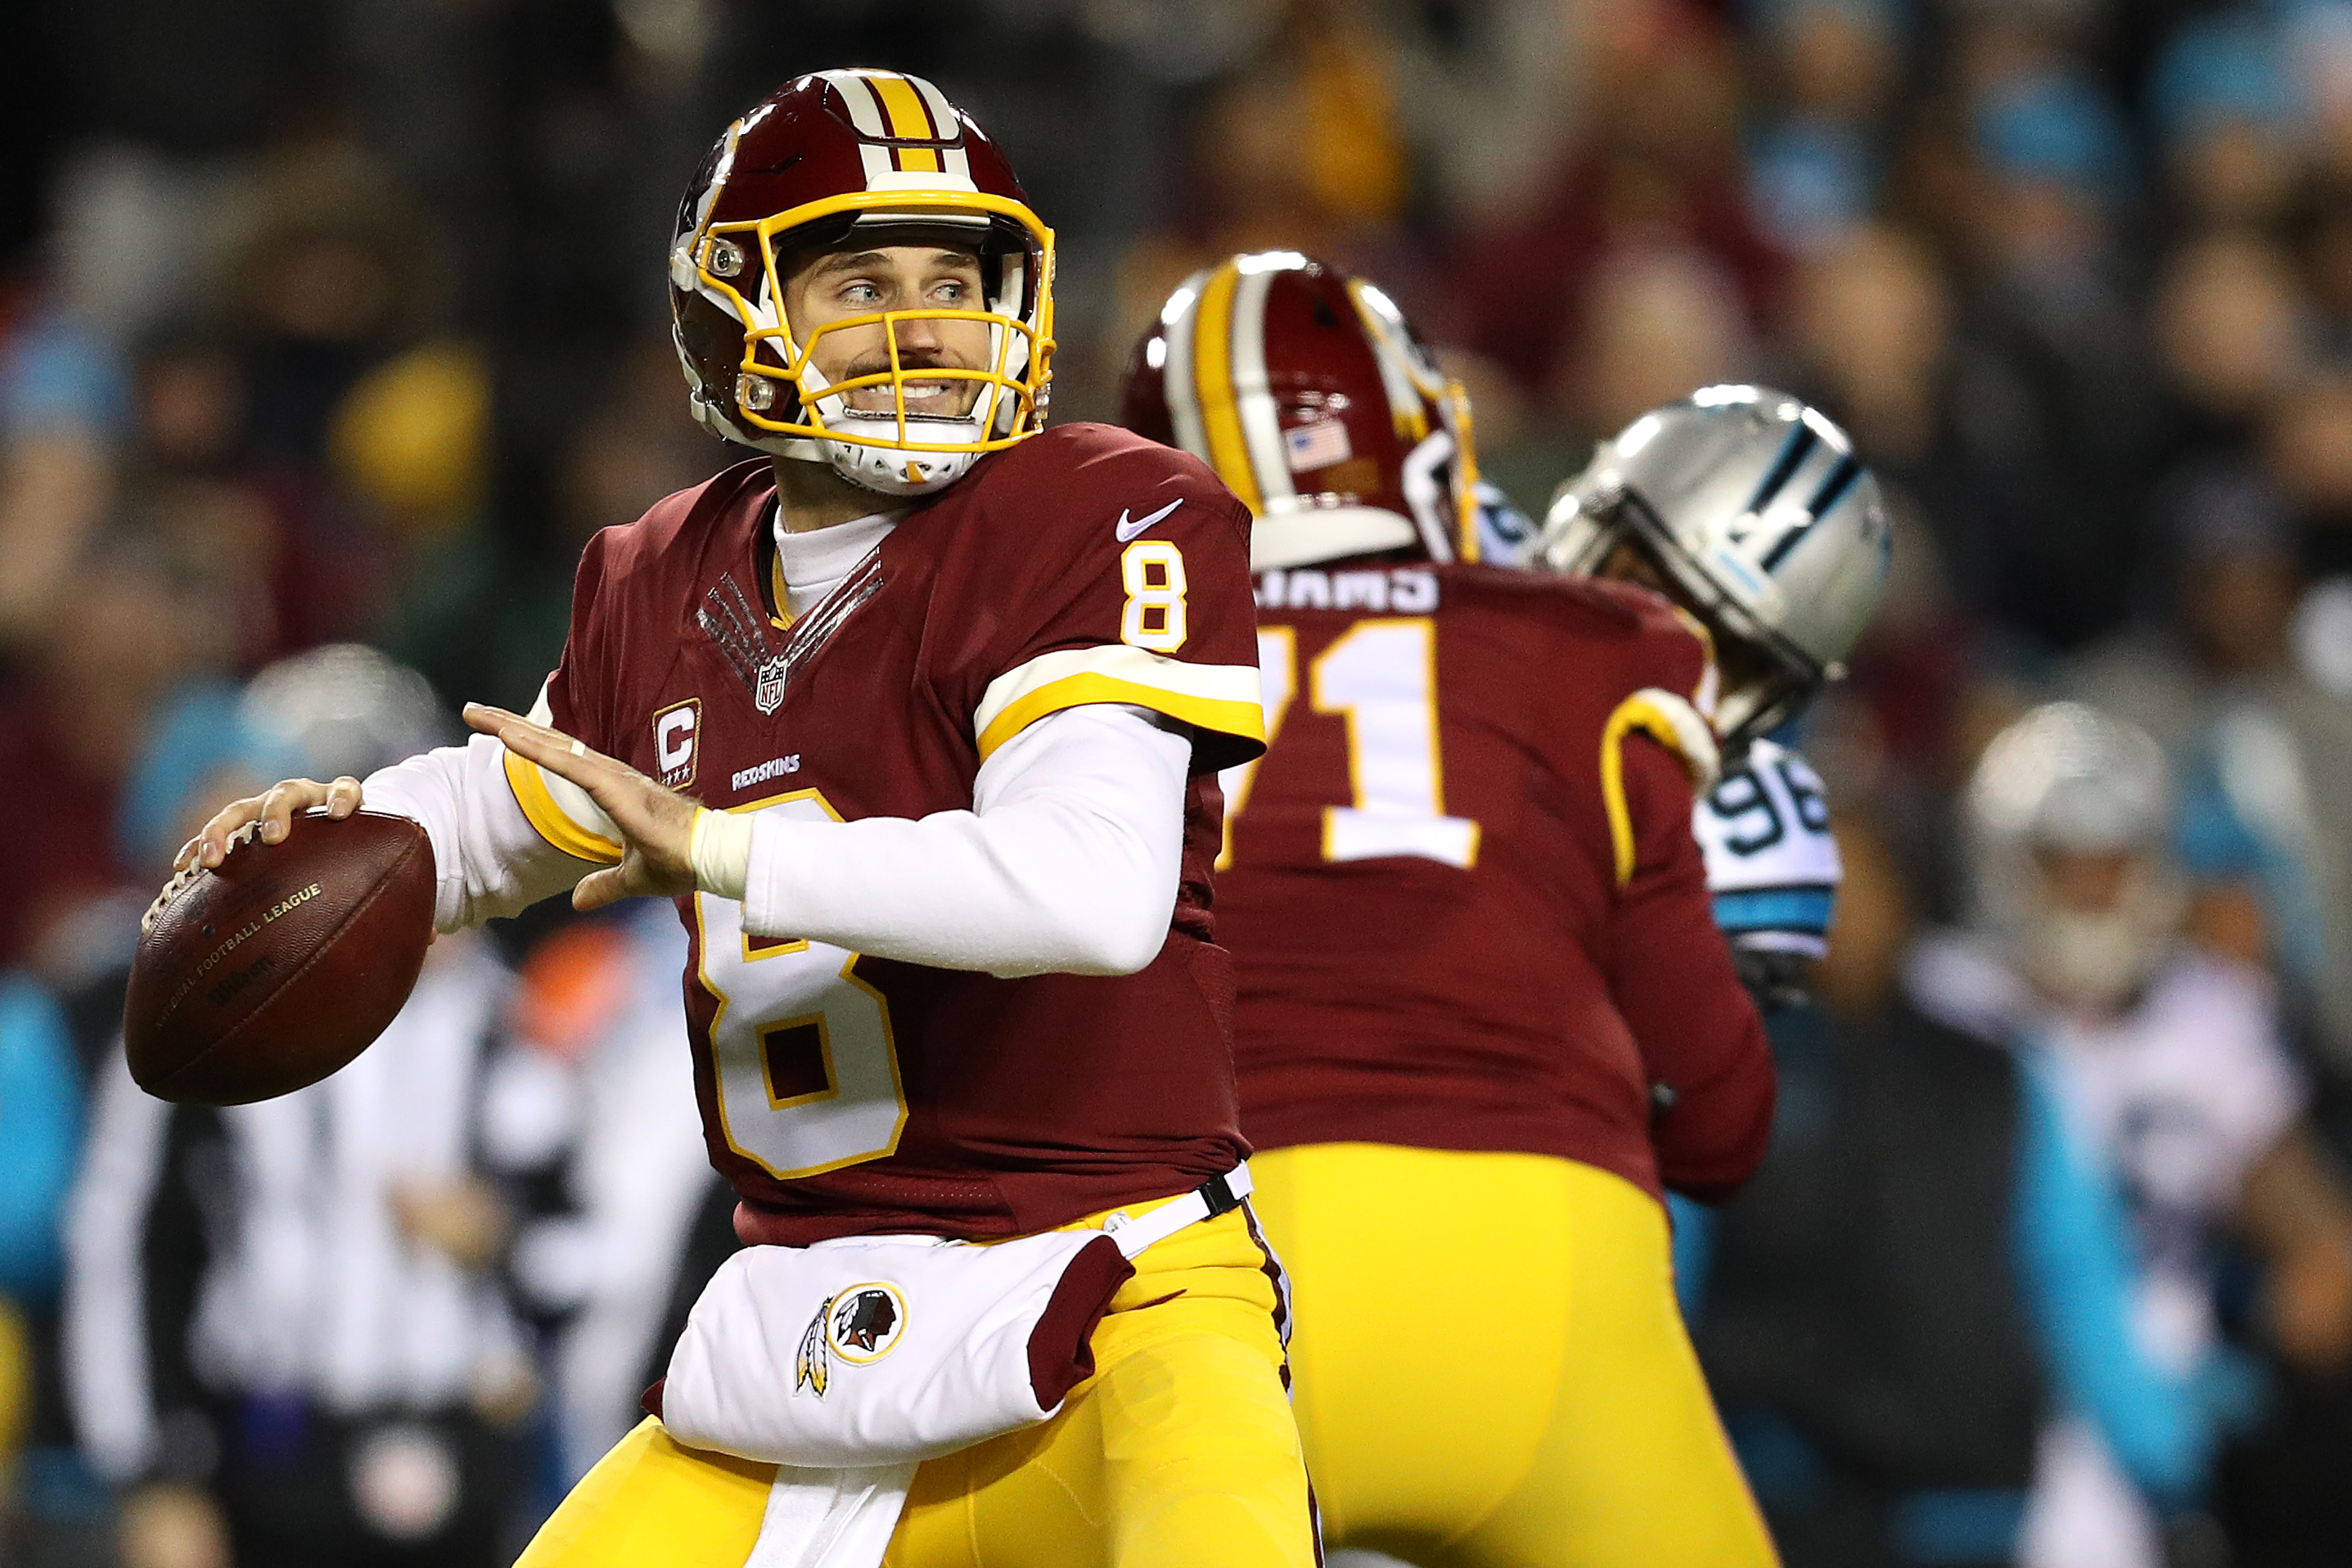 Kirk Cousins to San Francisco 49ers in 2018 is looking more likely